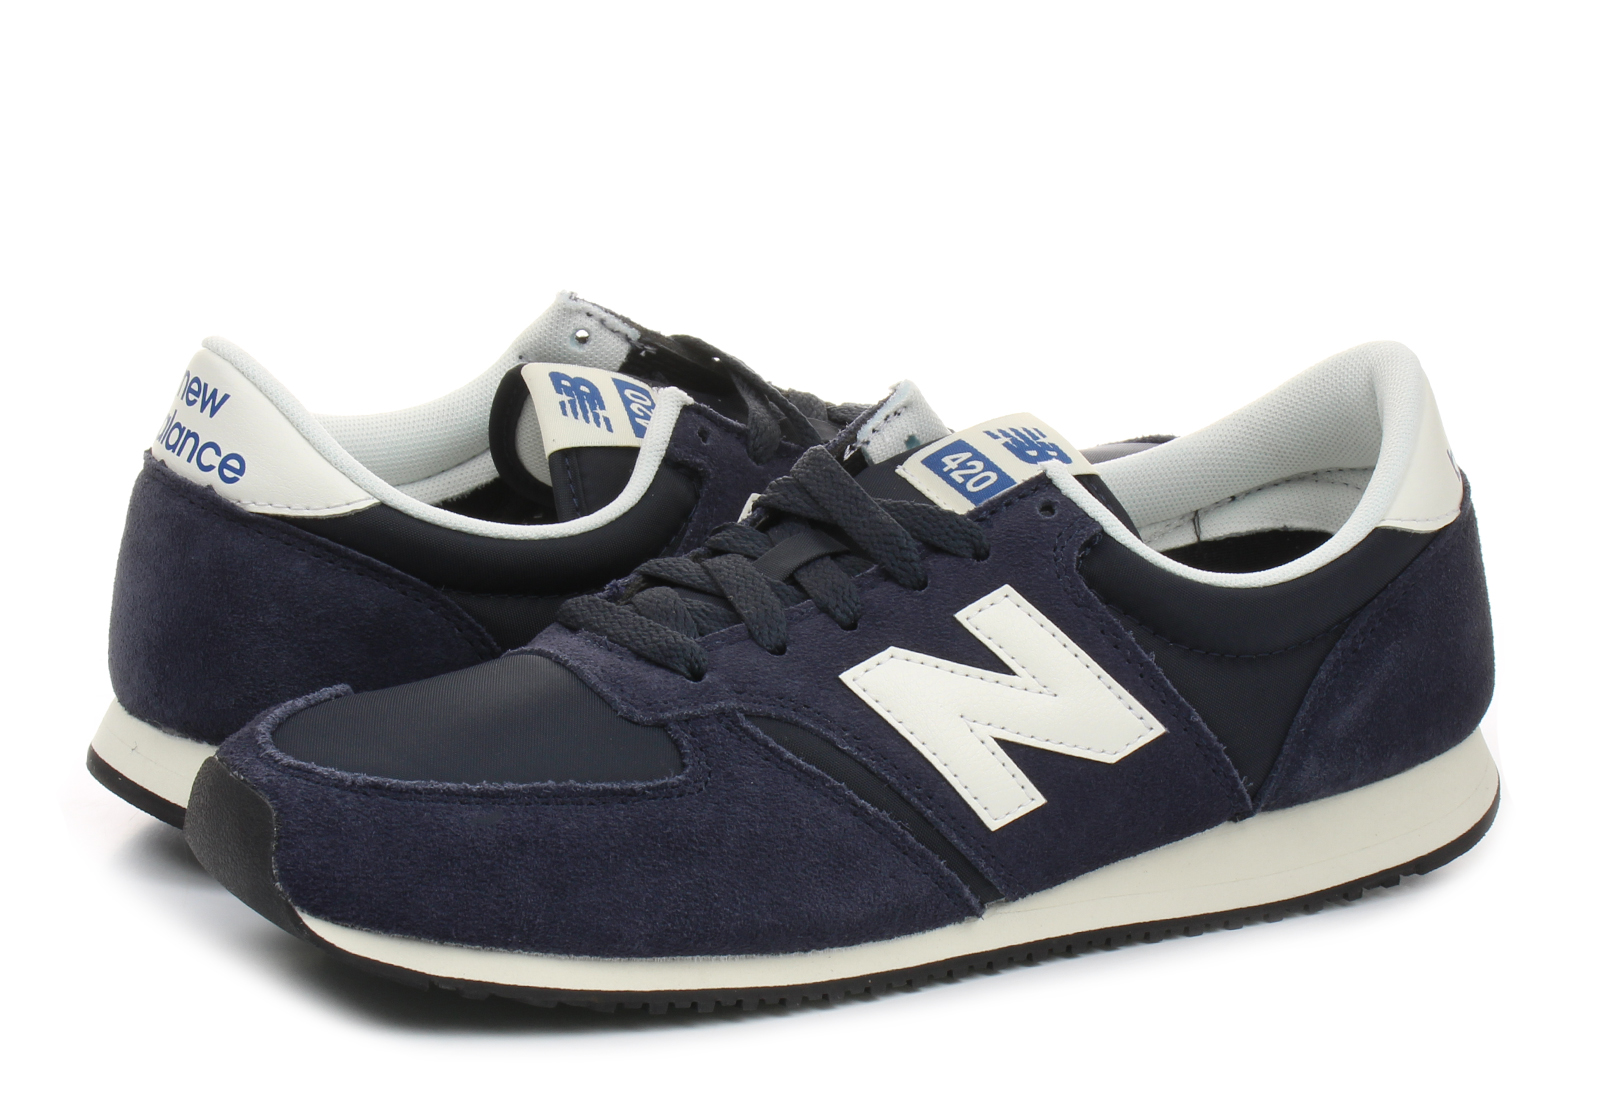 new balance shoes u420 u420nvb online shop for. Black Bedroom Furniture Sets. Home Design Ideas